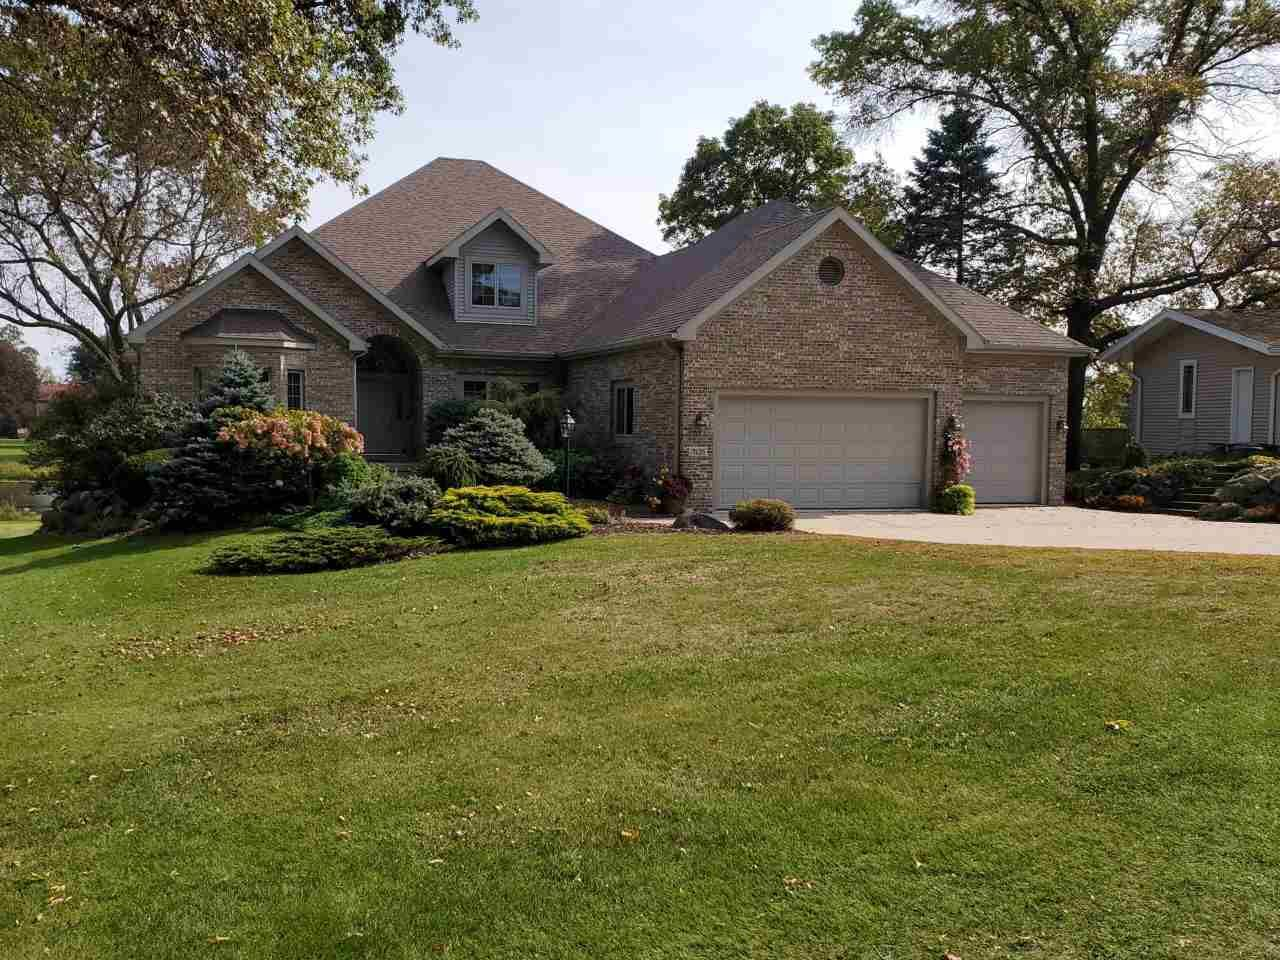 7026 Bridgeman Rd, Windsor, WI 53532 - #: 1878891